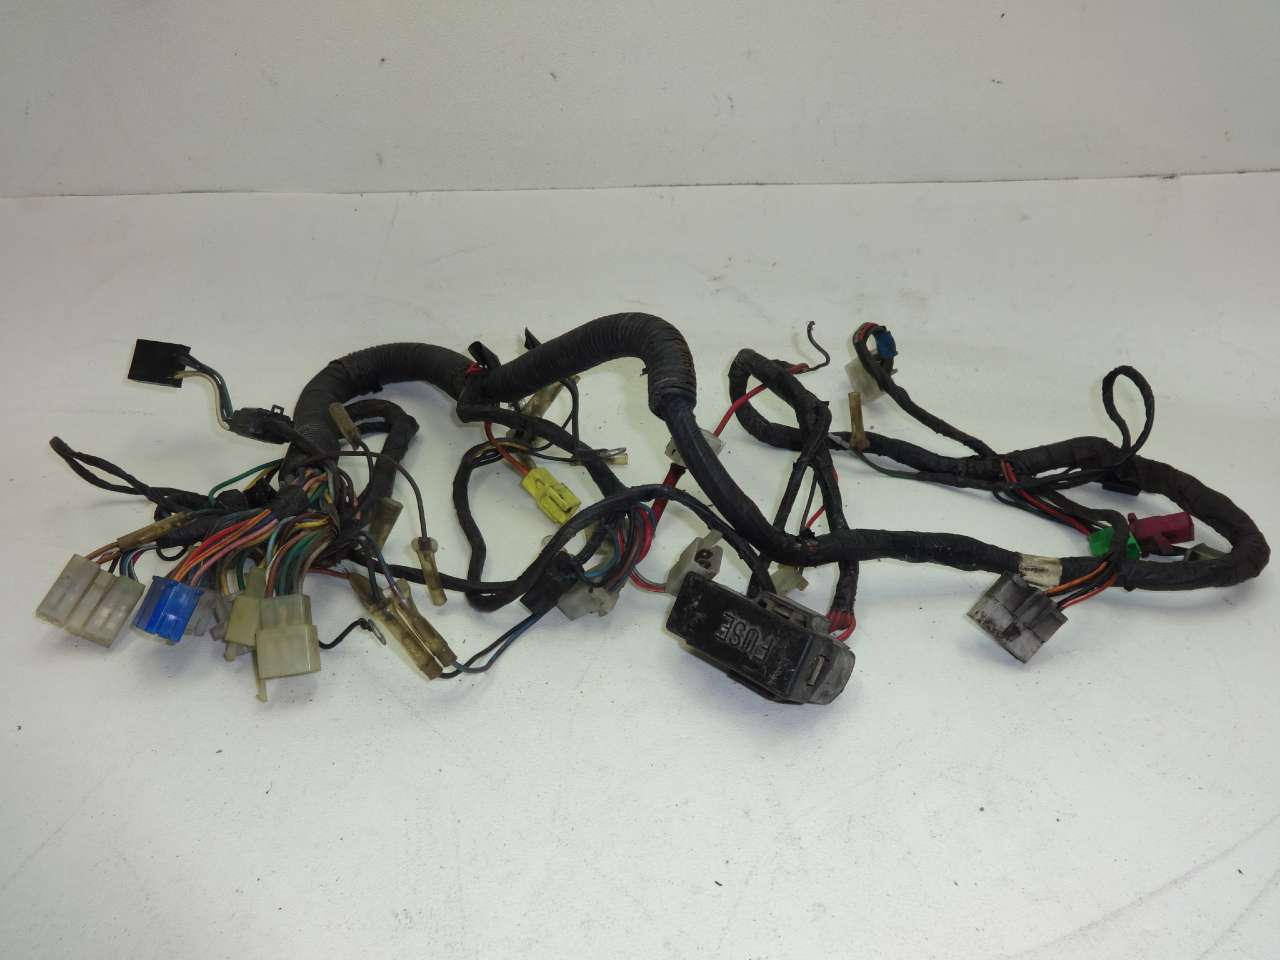 hight resolution of wire harness yamaha fz 750 1985 1991 201102250 motorparts online com yamaha 750 wire harness